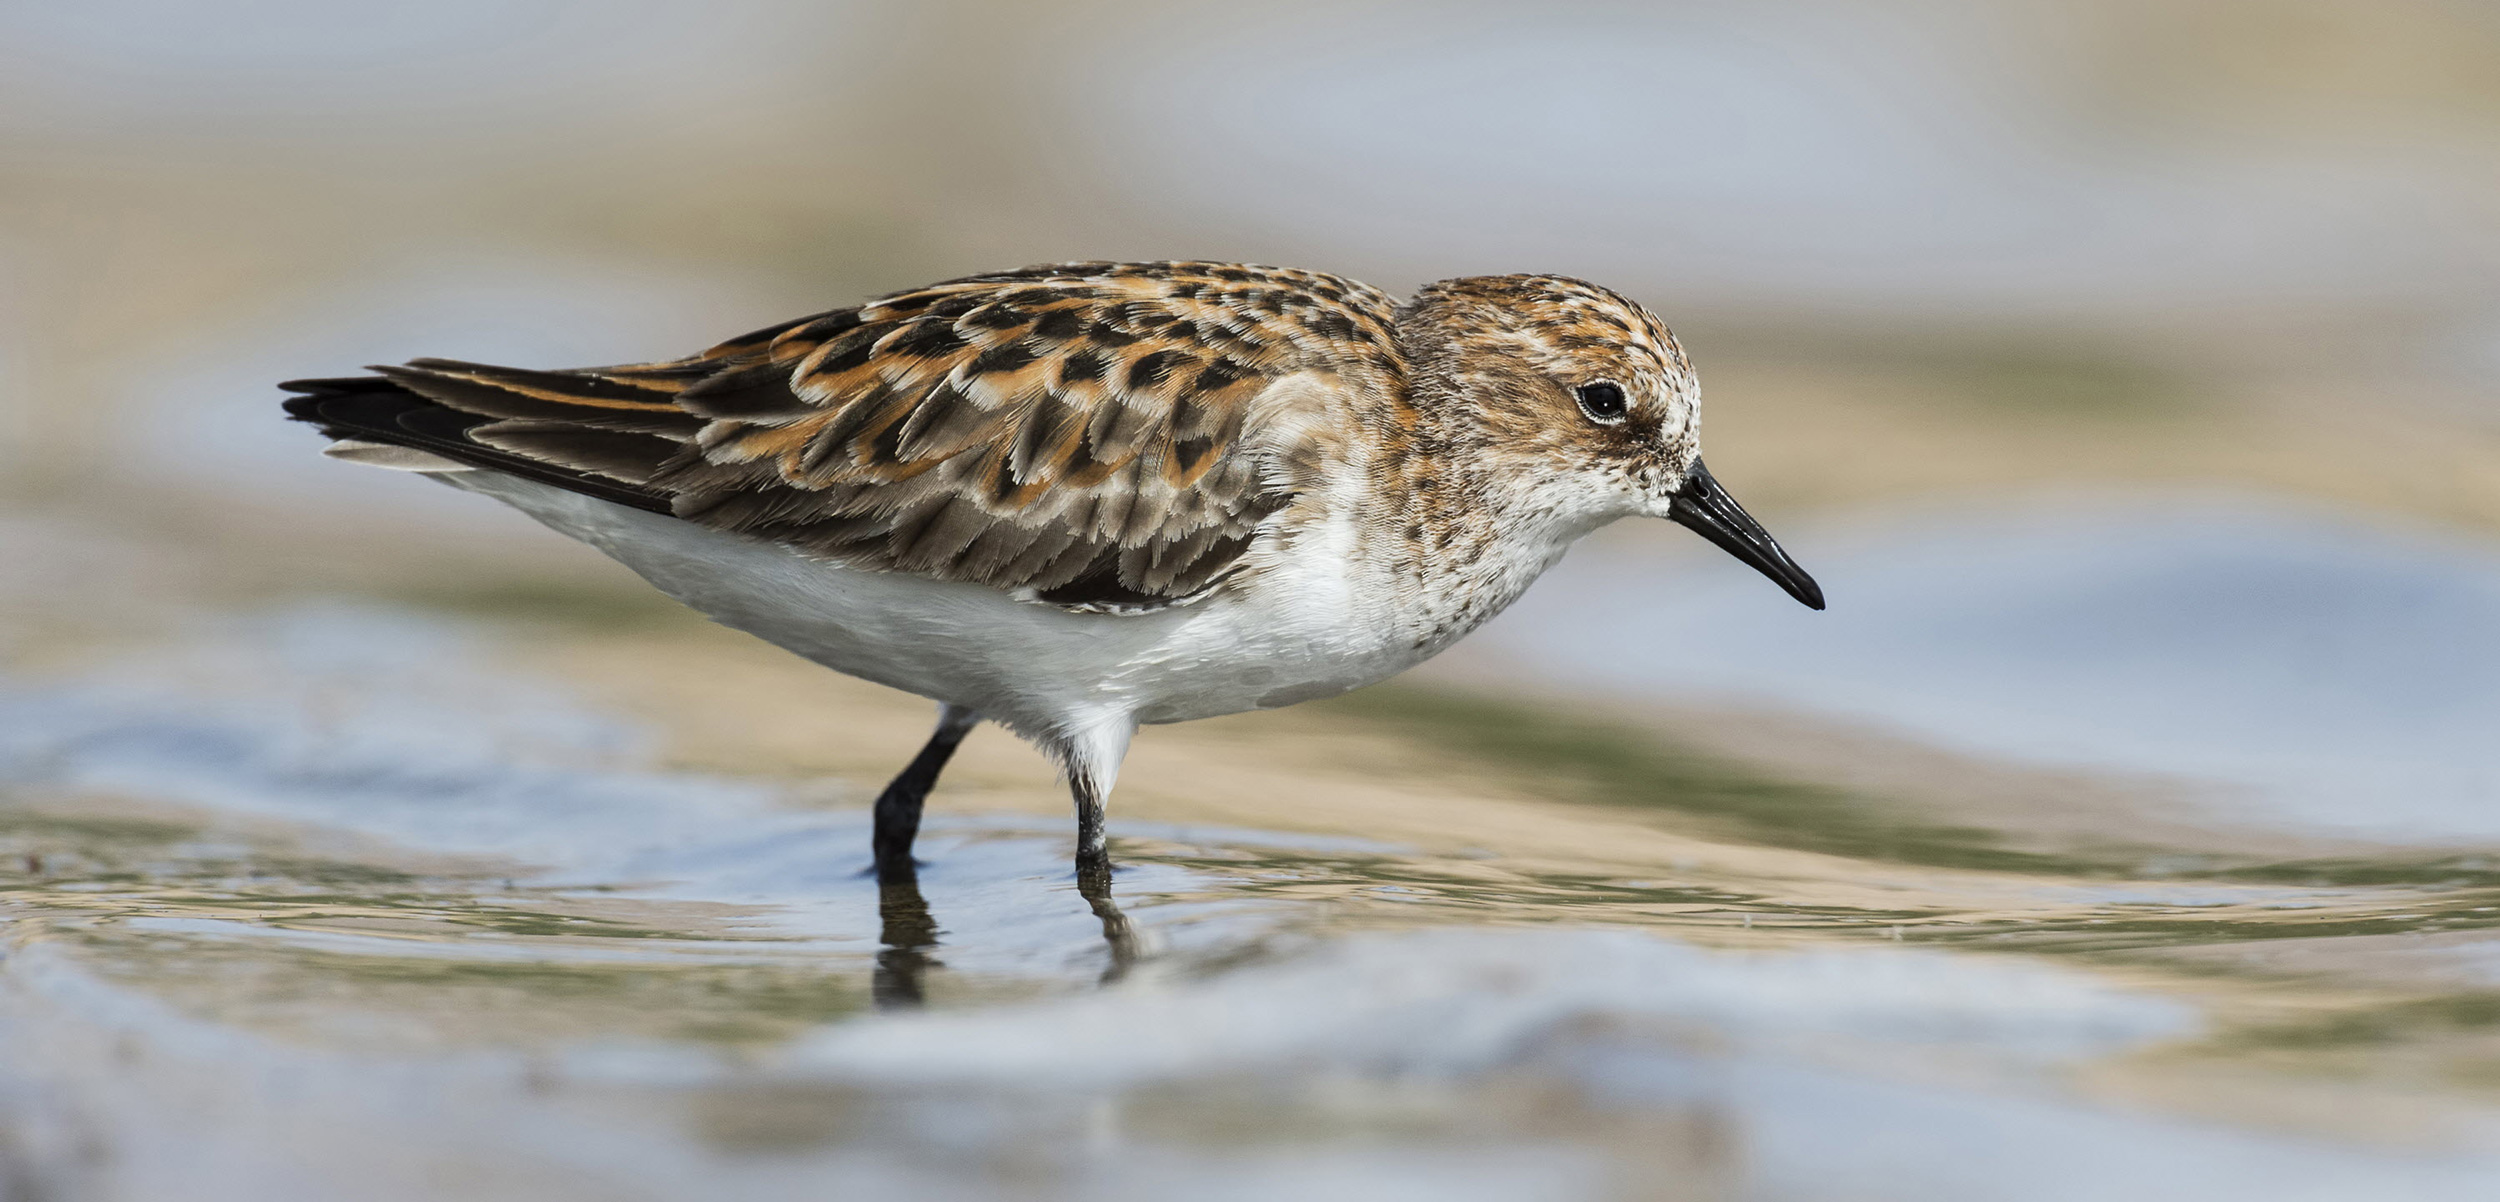 little stint wading in the water